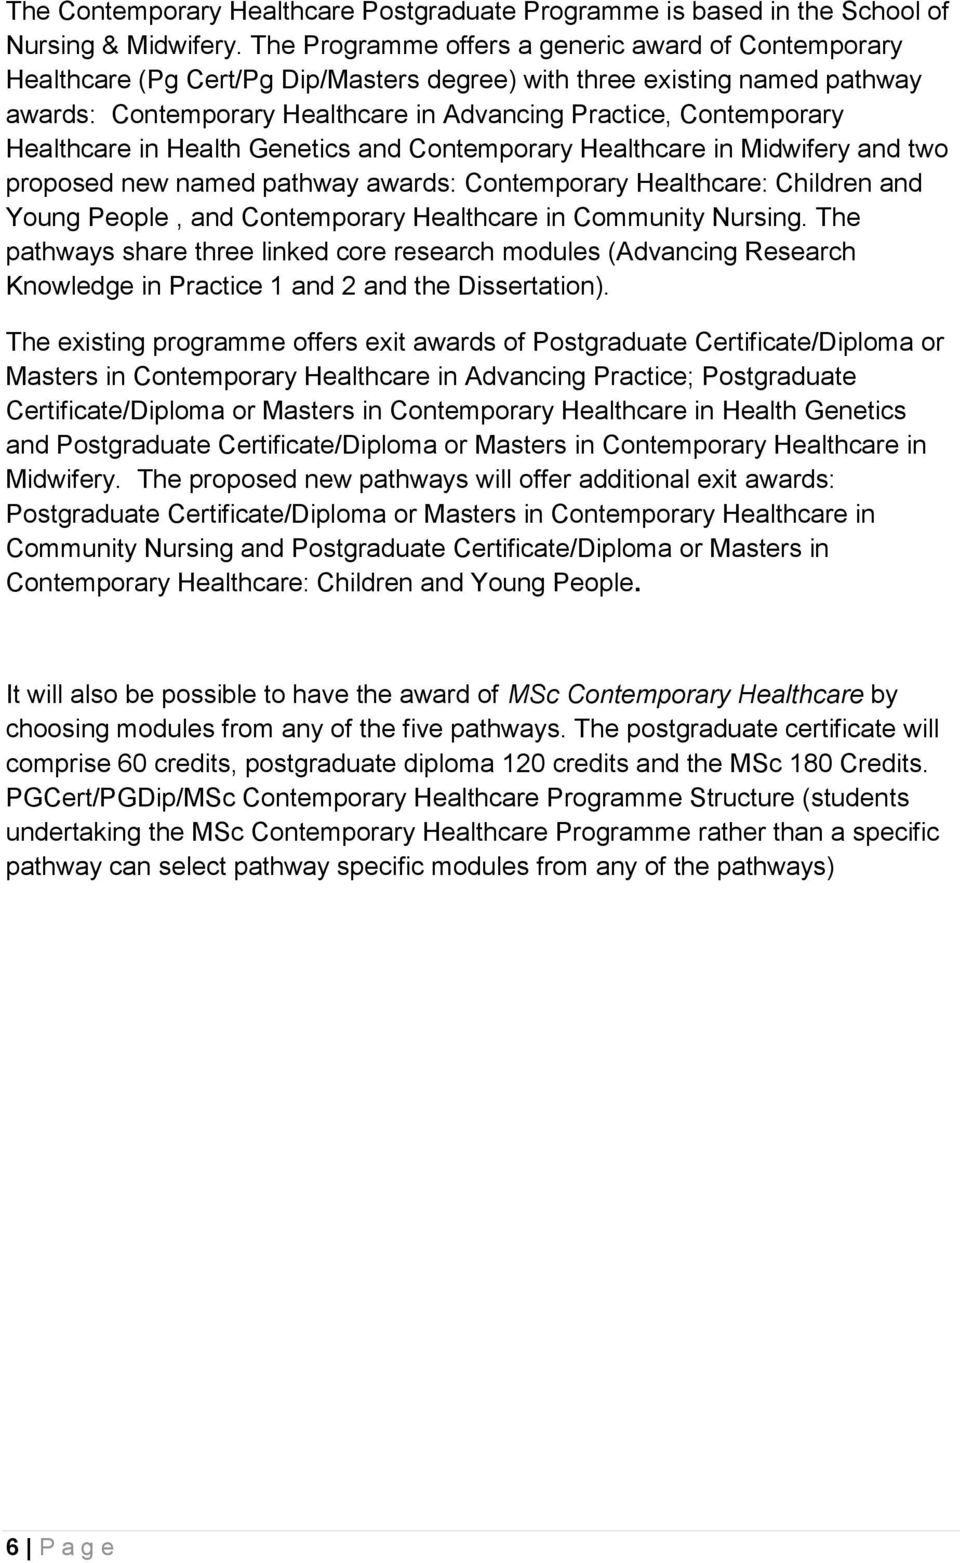 Healthcare in Health Genetics and Contemporary Healthcare in Midwifery and two proposed new named pathway awards: Contemporary Healthcare: Children and Young People, and Contemporary Healthcare in